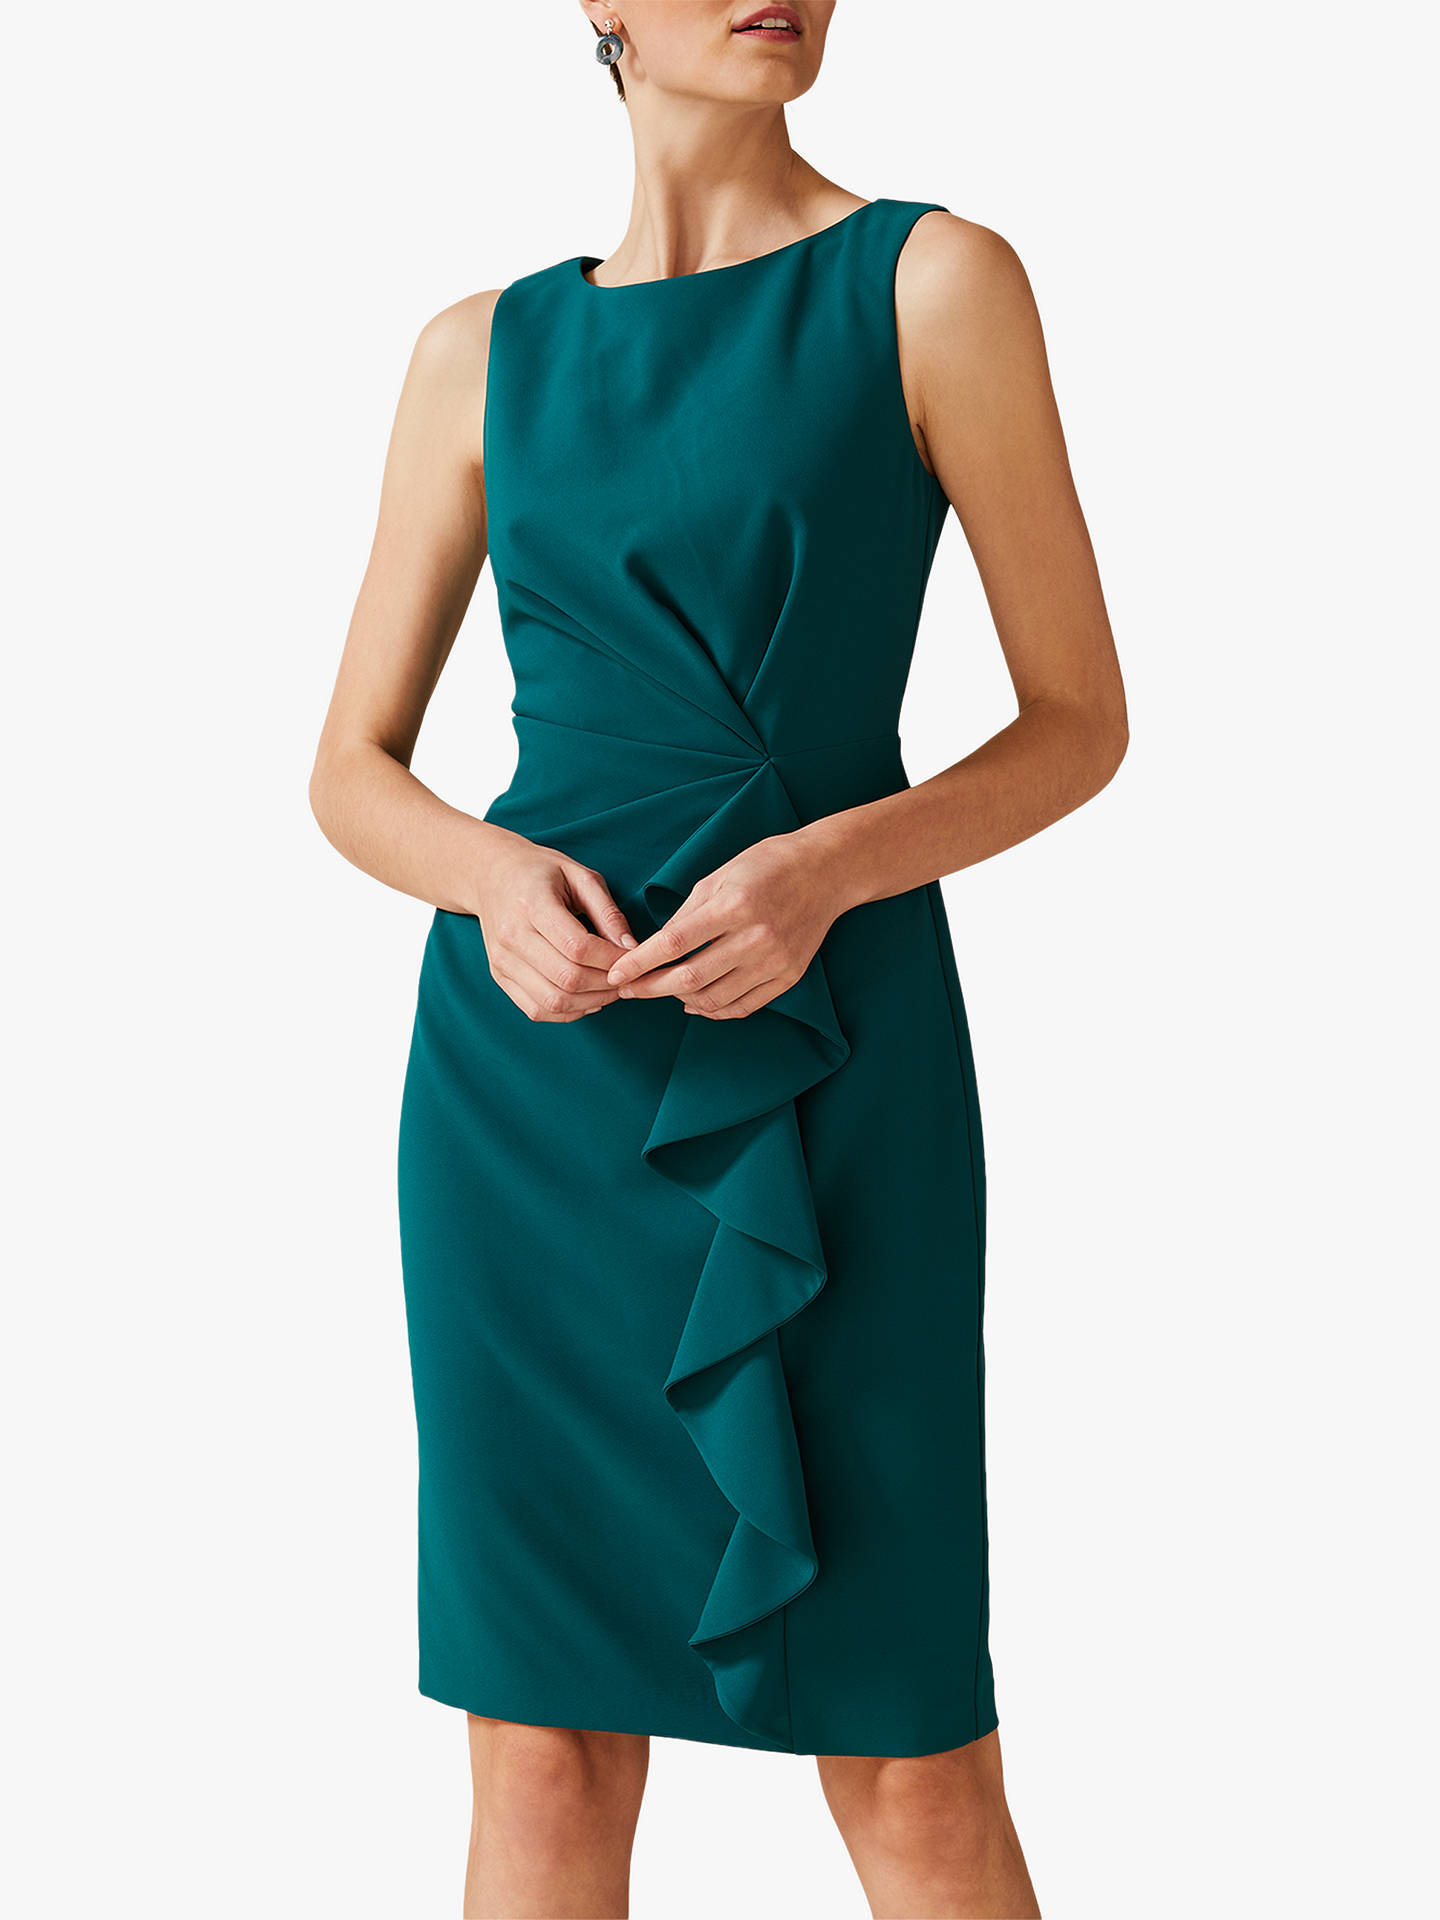 Phase Eight Gia Frill Dress, Bright Jade on